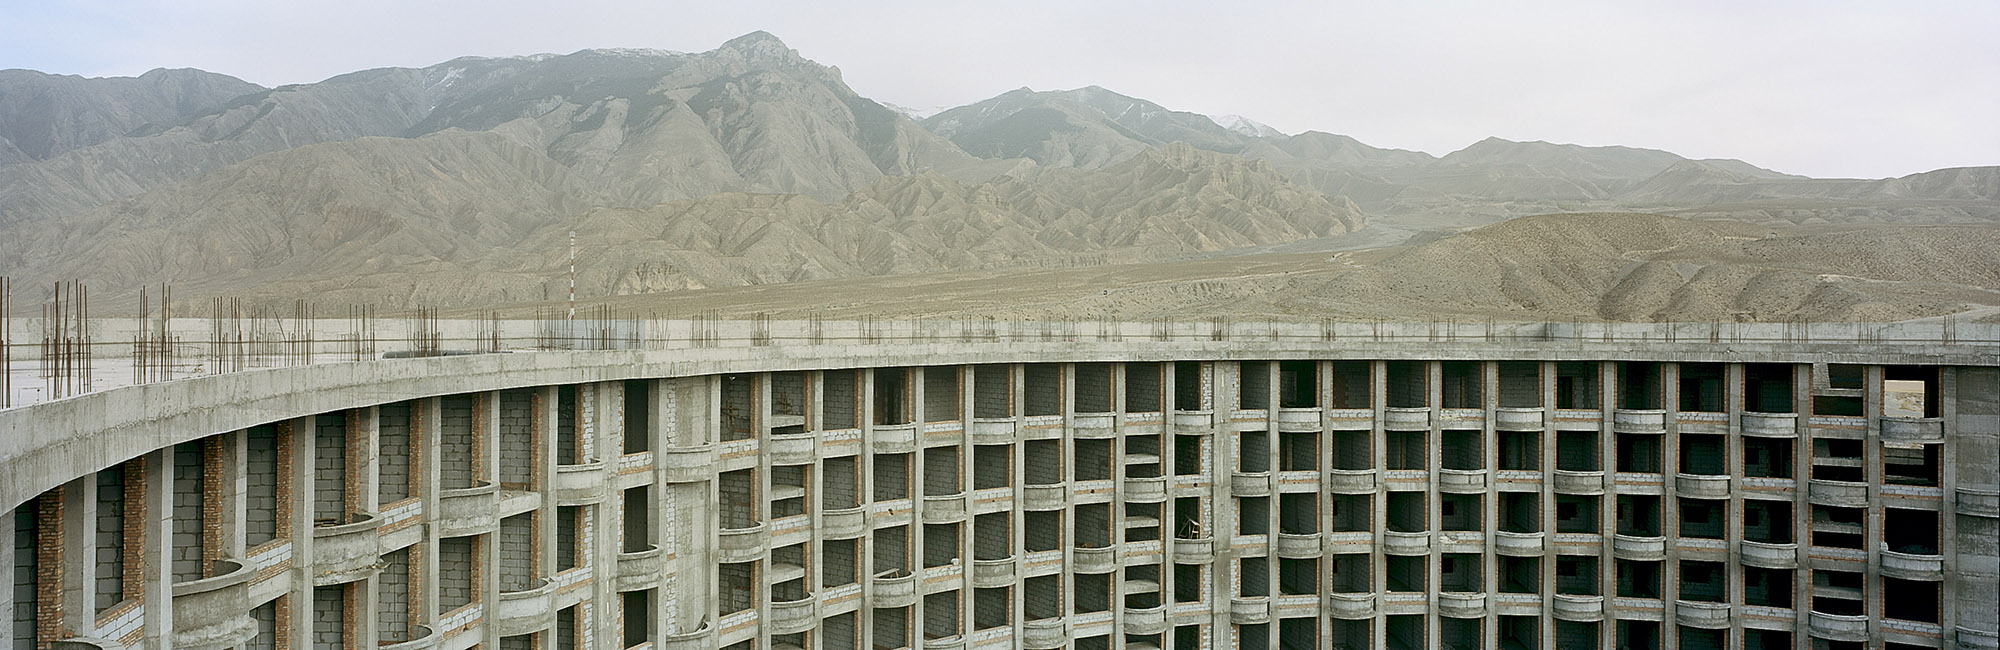 "Abandoned 5 Star Hotel Construction.  Guide, Qinghai, China. 2014   One of the benefits of creating the Sanjiangyuan National Nature Reserve, according to China's State Council, would be ""ecological protection and construction"" on the plateau. Development in the protected ecosystem of the Reserve, however, soon extended beyond tourism, to the mining of gold and other minerals, road construction, and real estate development. Meanwhile some of the tourism-related projects were lost to changing political winds: according to a local security guard, construction on this 5-star hotel came to a halt when developers couldn't secure the necessary permits after a turnover in local government personnel. While much new construction in the area has reached completion, scientists have raised concerns that large towns and cities, and the infrastructure that connects them create higher densities of humans that will inevitably increase the stress on the local ecology."